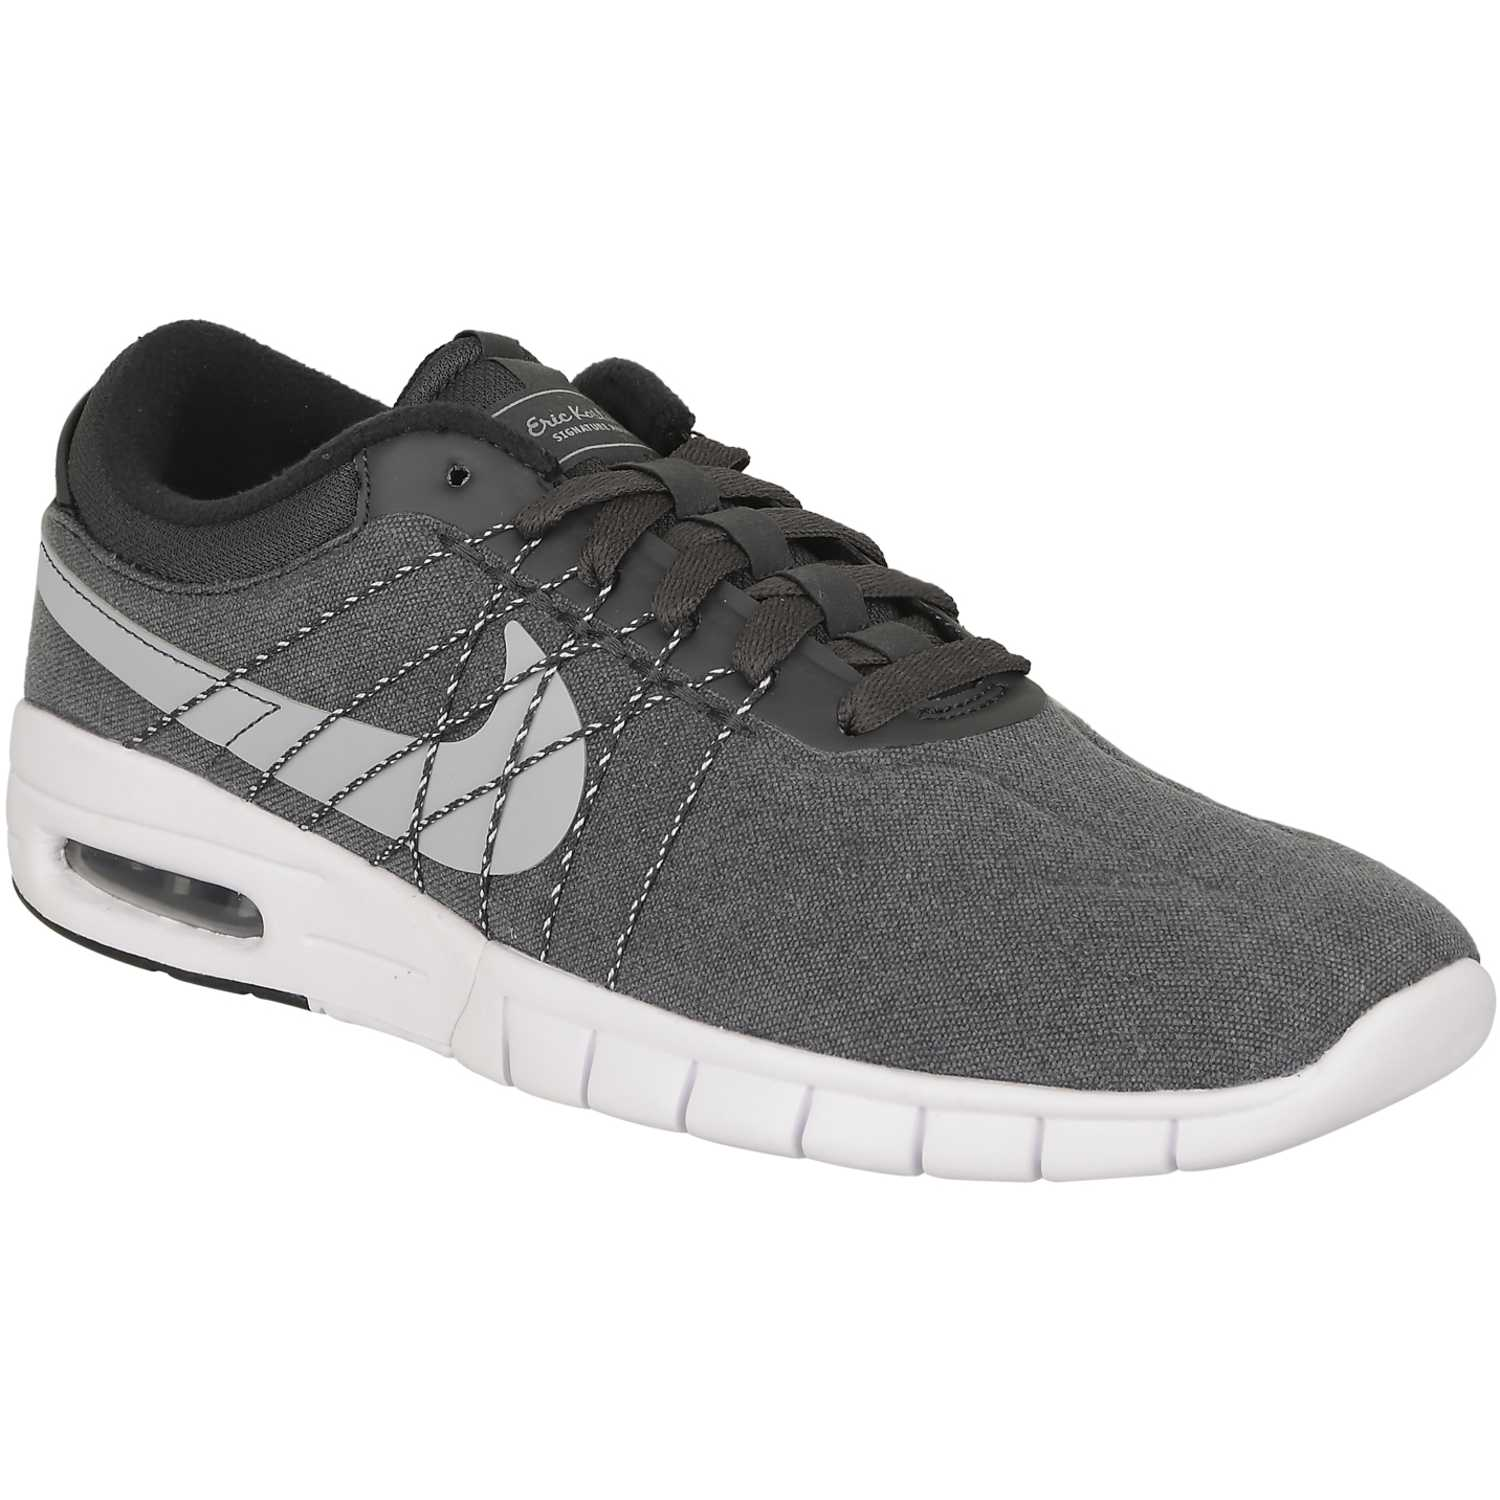 the latest 35e57 fdd3c Zapatilla de Hombre Nike Gris  blanco koston max